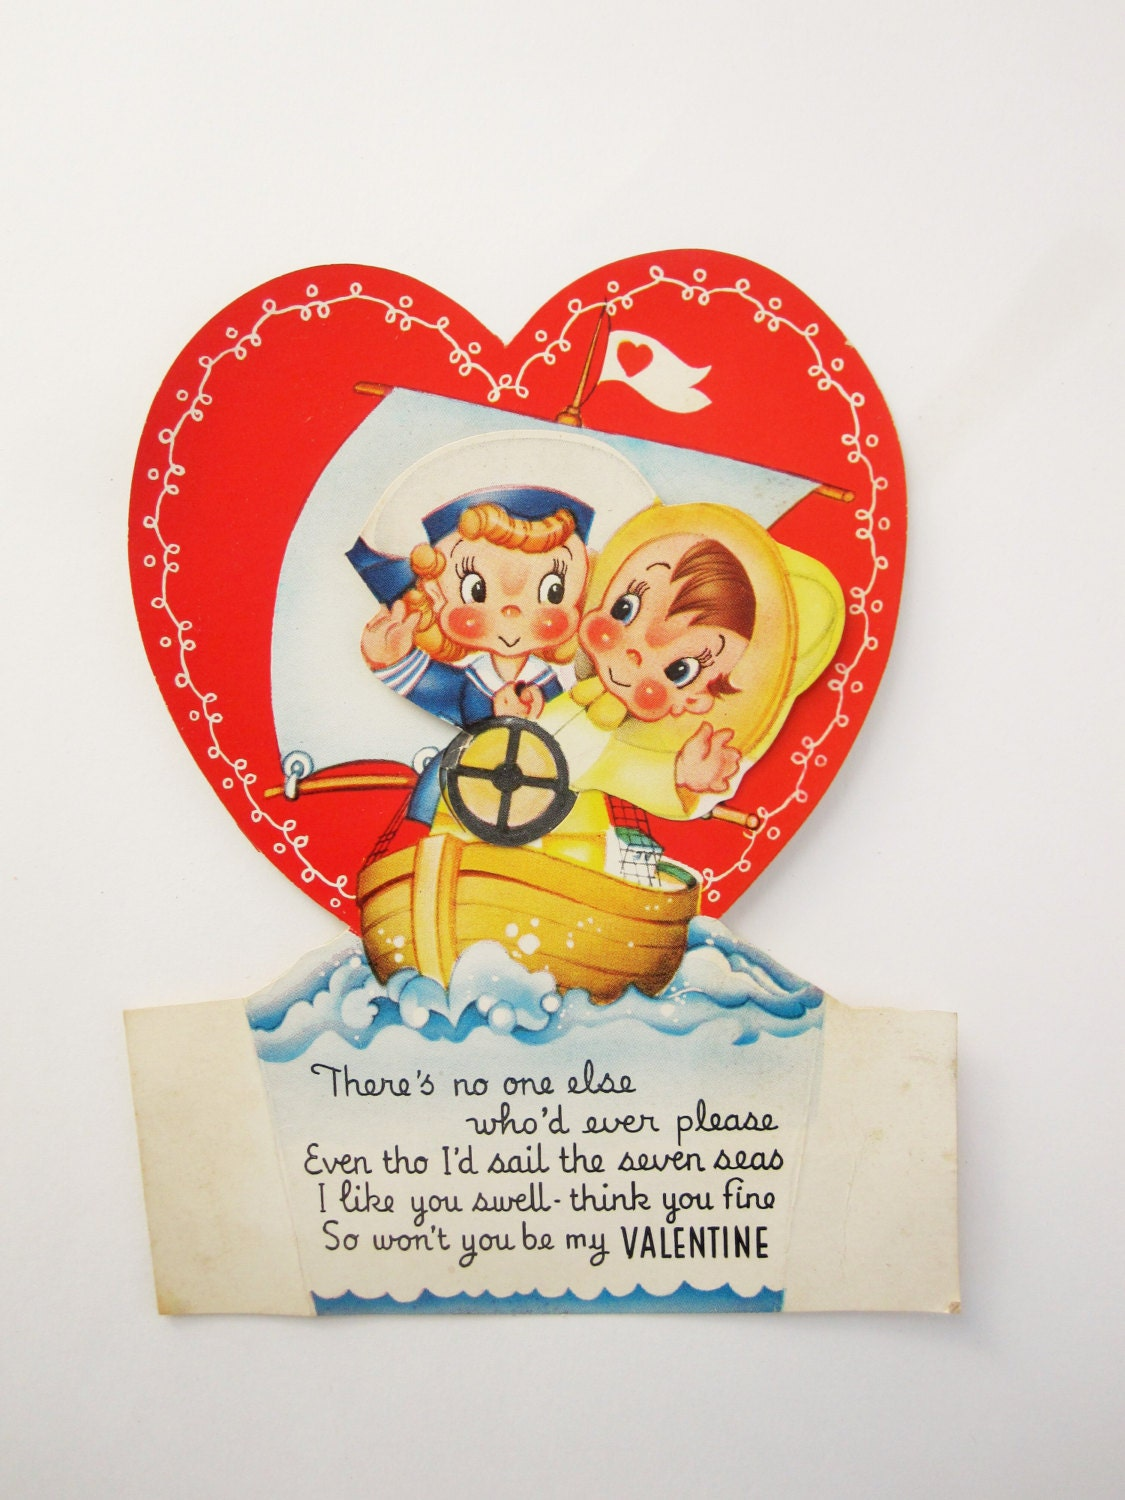 A Vintage 1940 50s Valentine Animated Card With Two Sailors